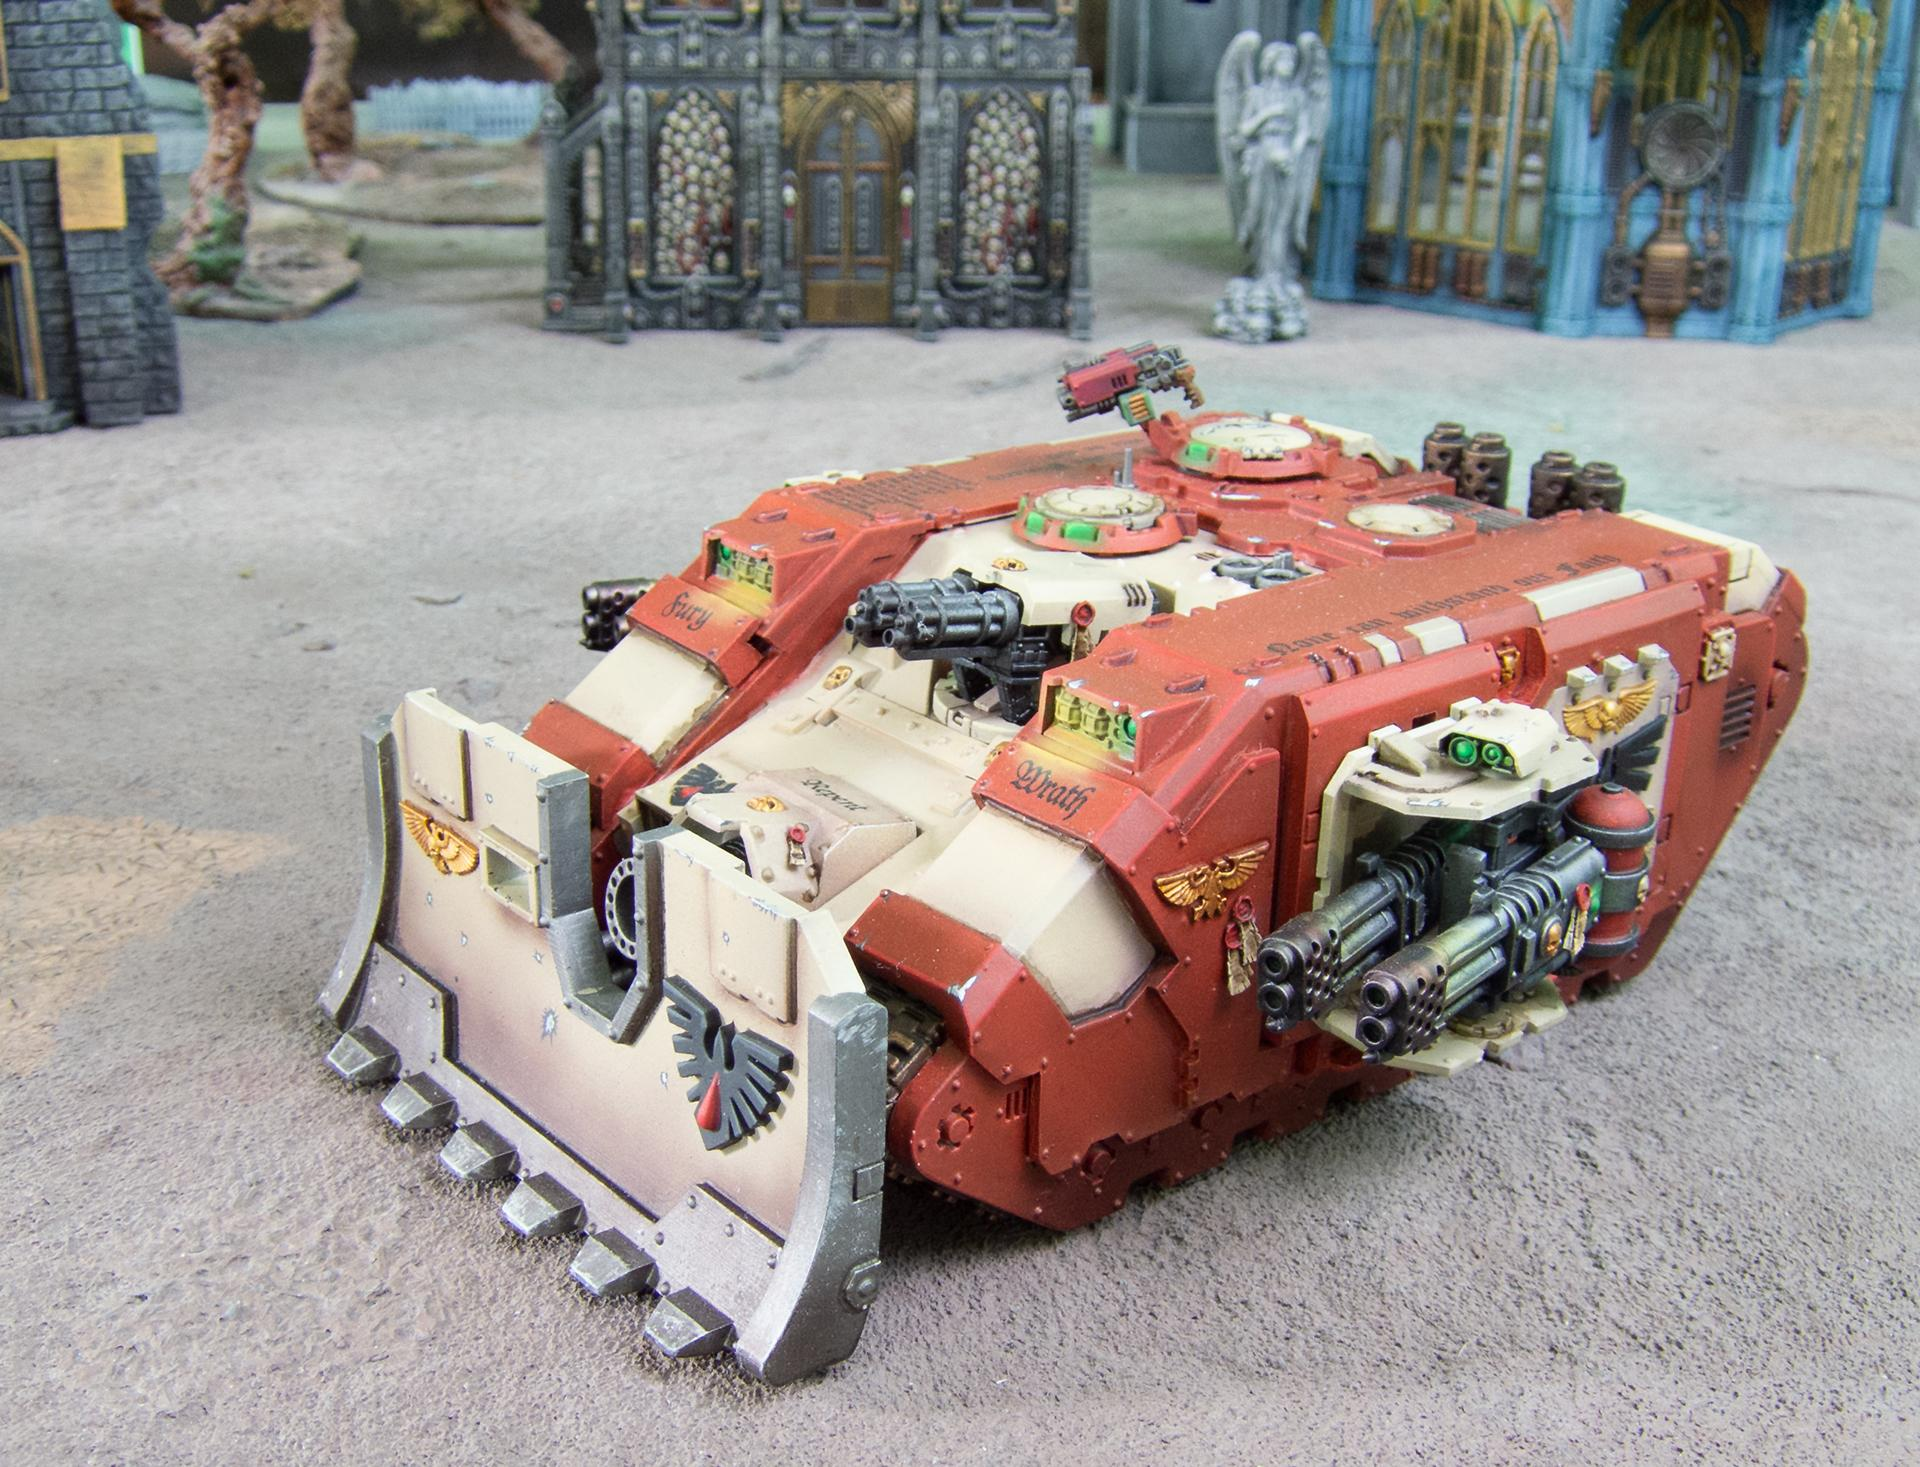 3d Print, Anycubic Photon, Astartes, Blood Ravens, Conversion, Fdm, I3 Mega, Land Raider, Land Raider Ares, Resin. Dlp, Space Marines, Vindicator